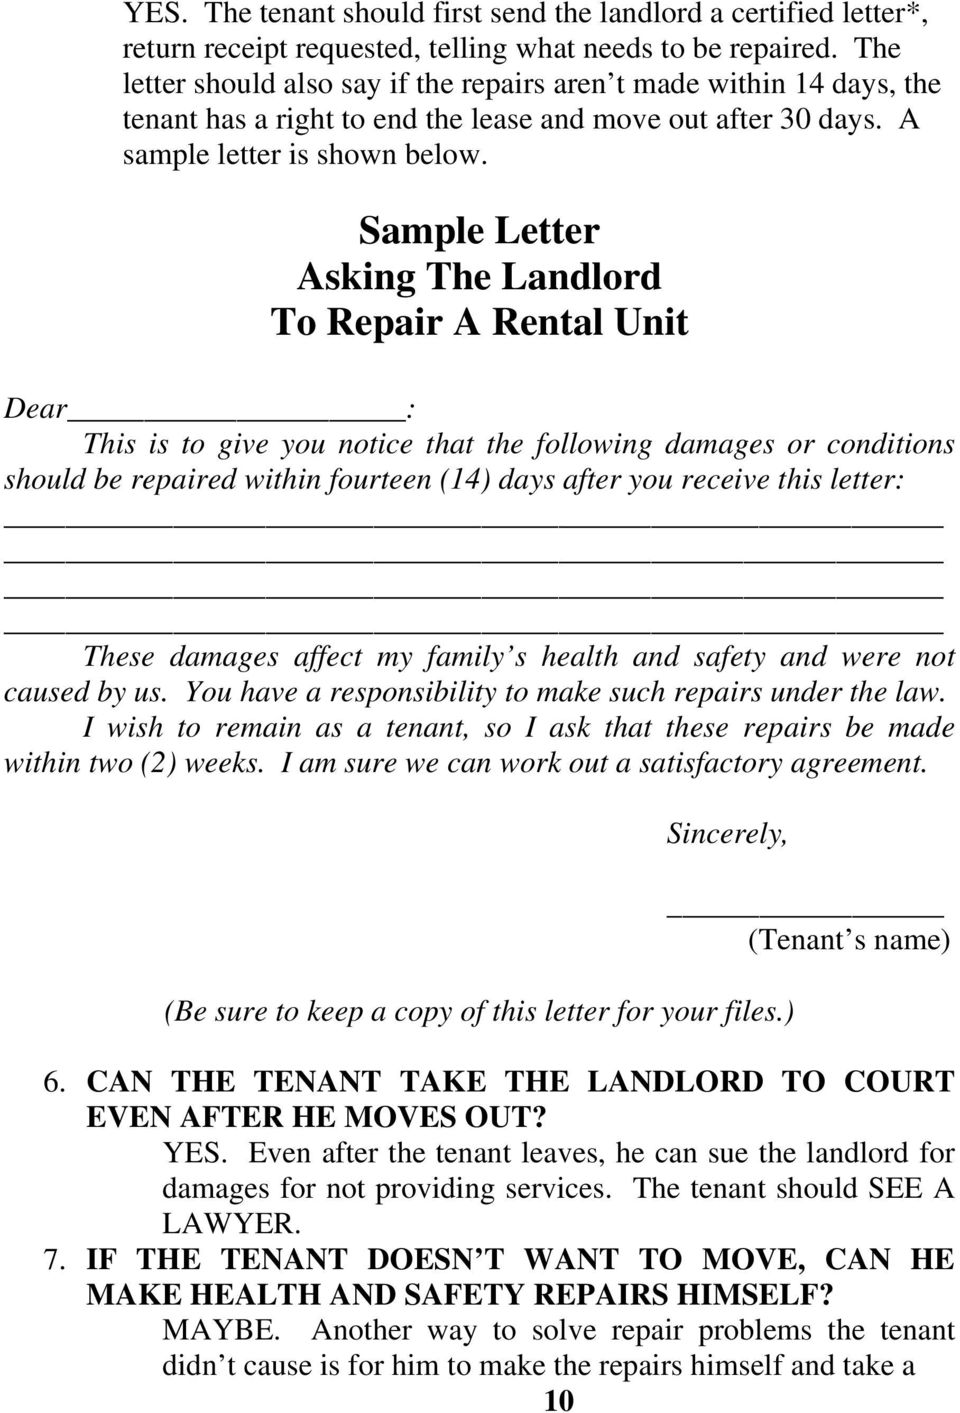 Sample Letter Asking The Landlord To Repair A Rental Unit Dear : This is to give you notice that the following damages or conditions should be repaired within fourteen (14) days after you receive